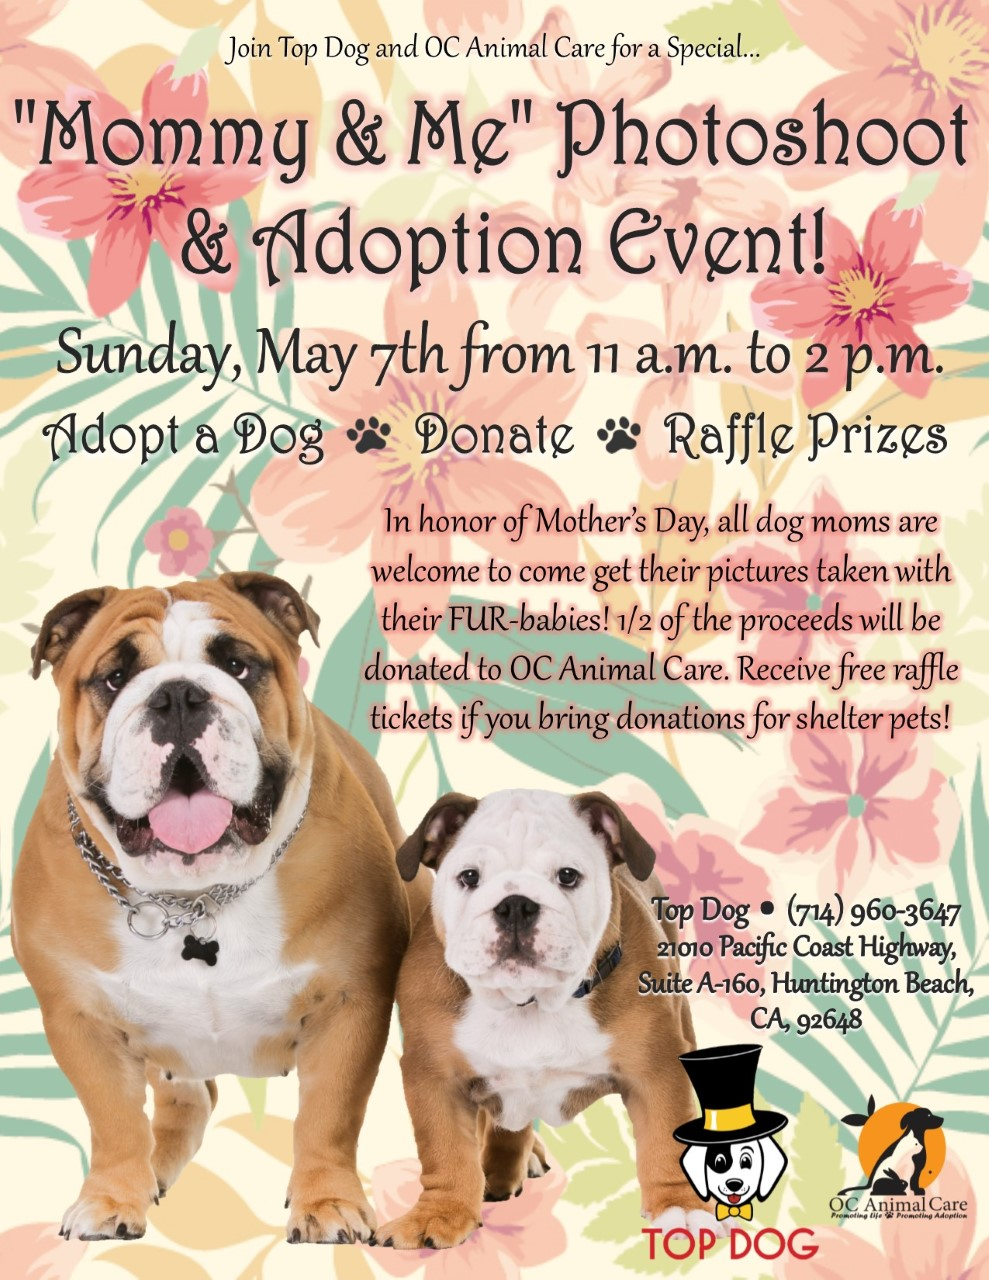 Dog Adoption Events Southern California